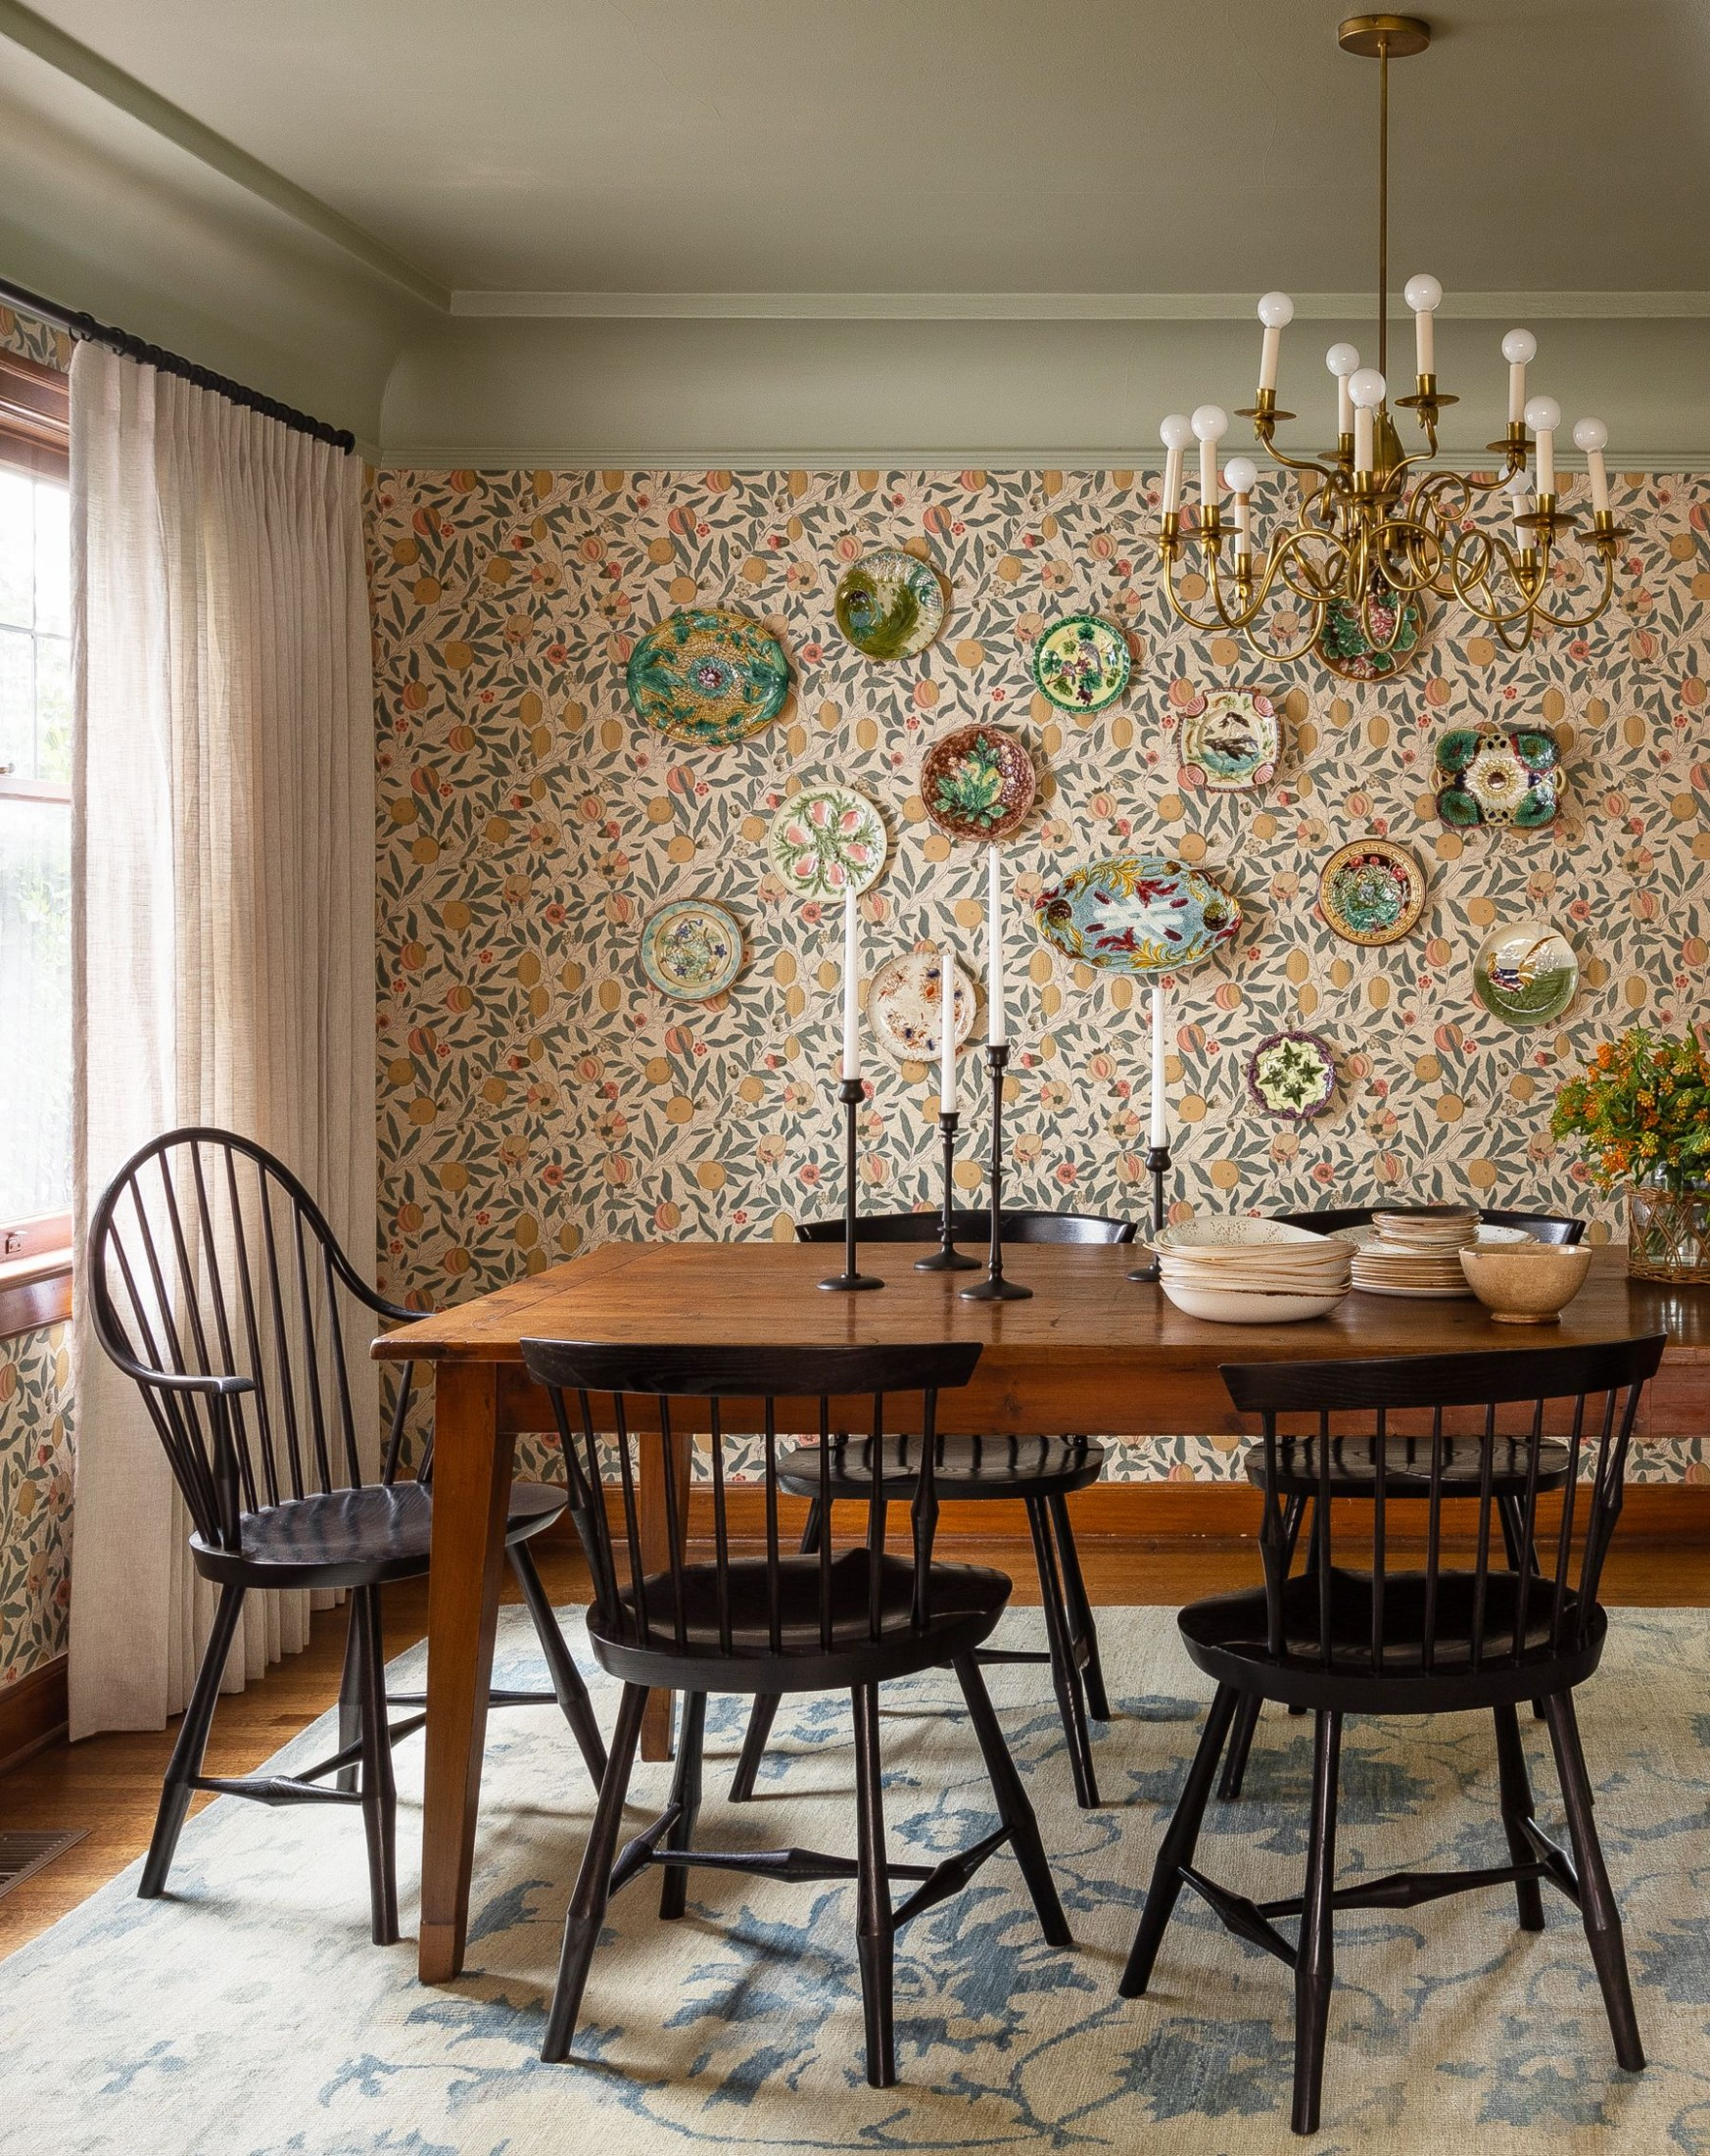 8 Best Dining Room Decorating Ideas, Furniture, Designs, and Pictures - Dining Room Renovation Ideas